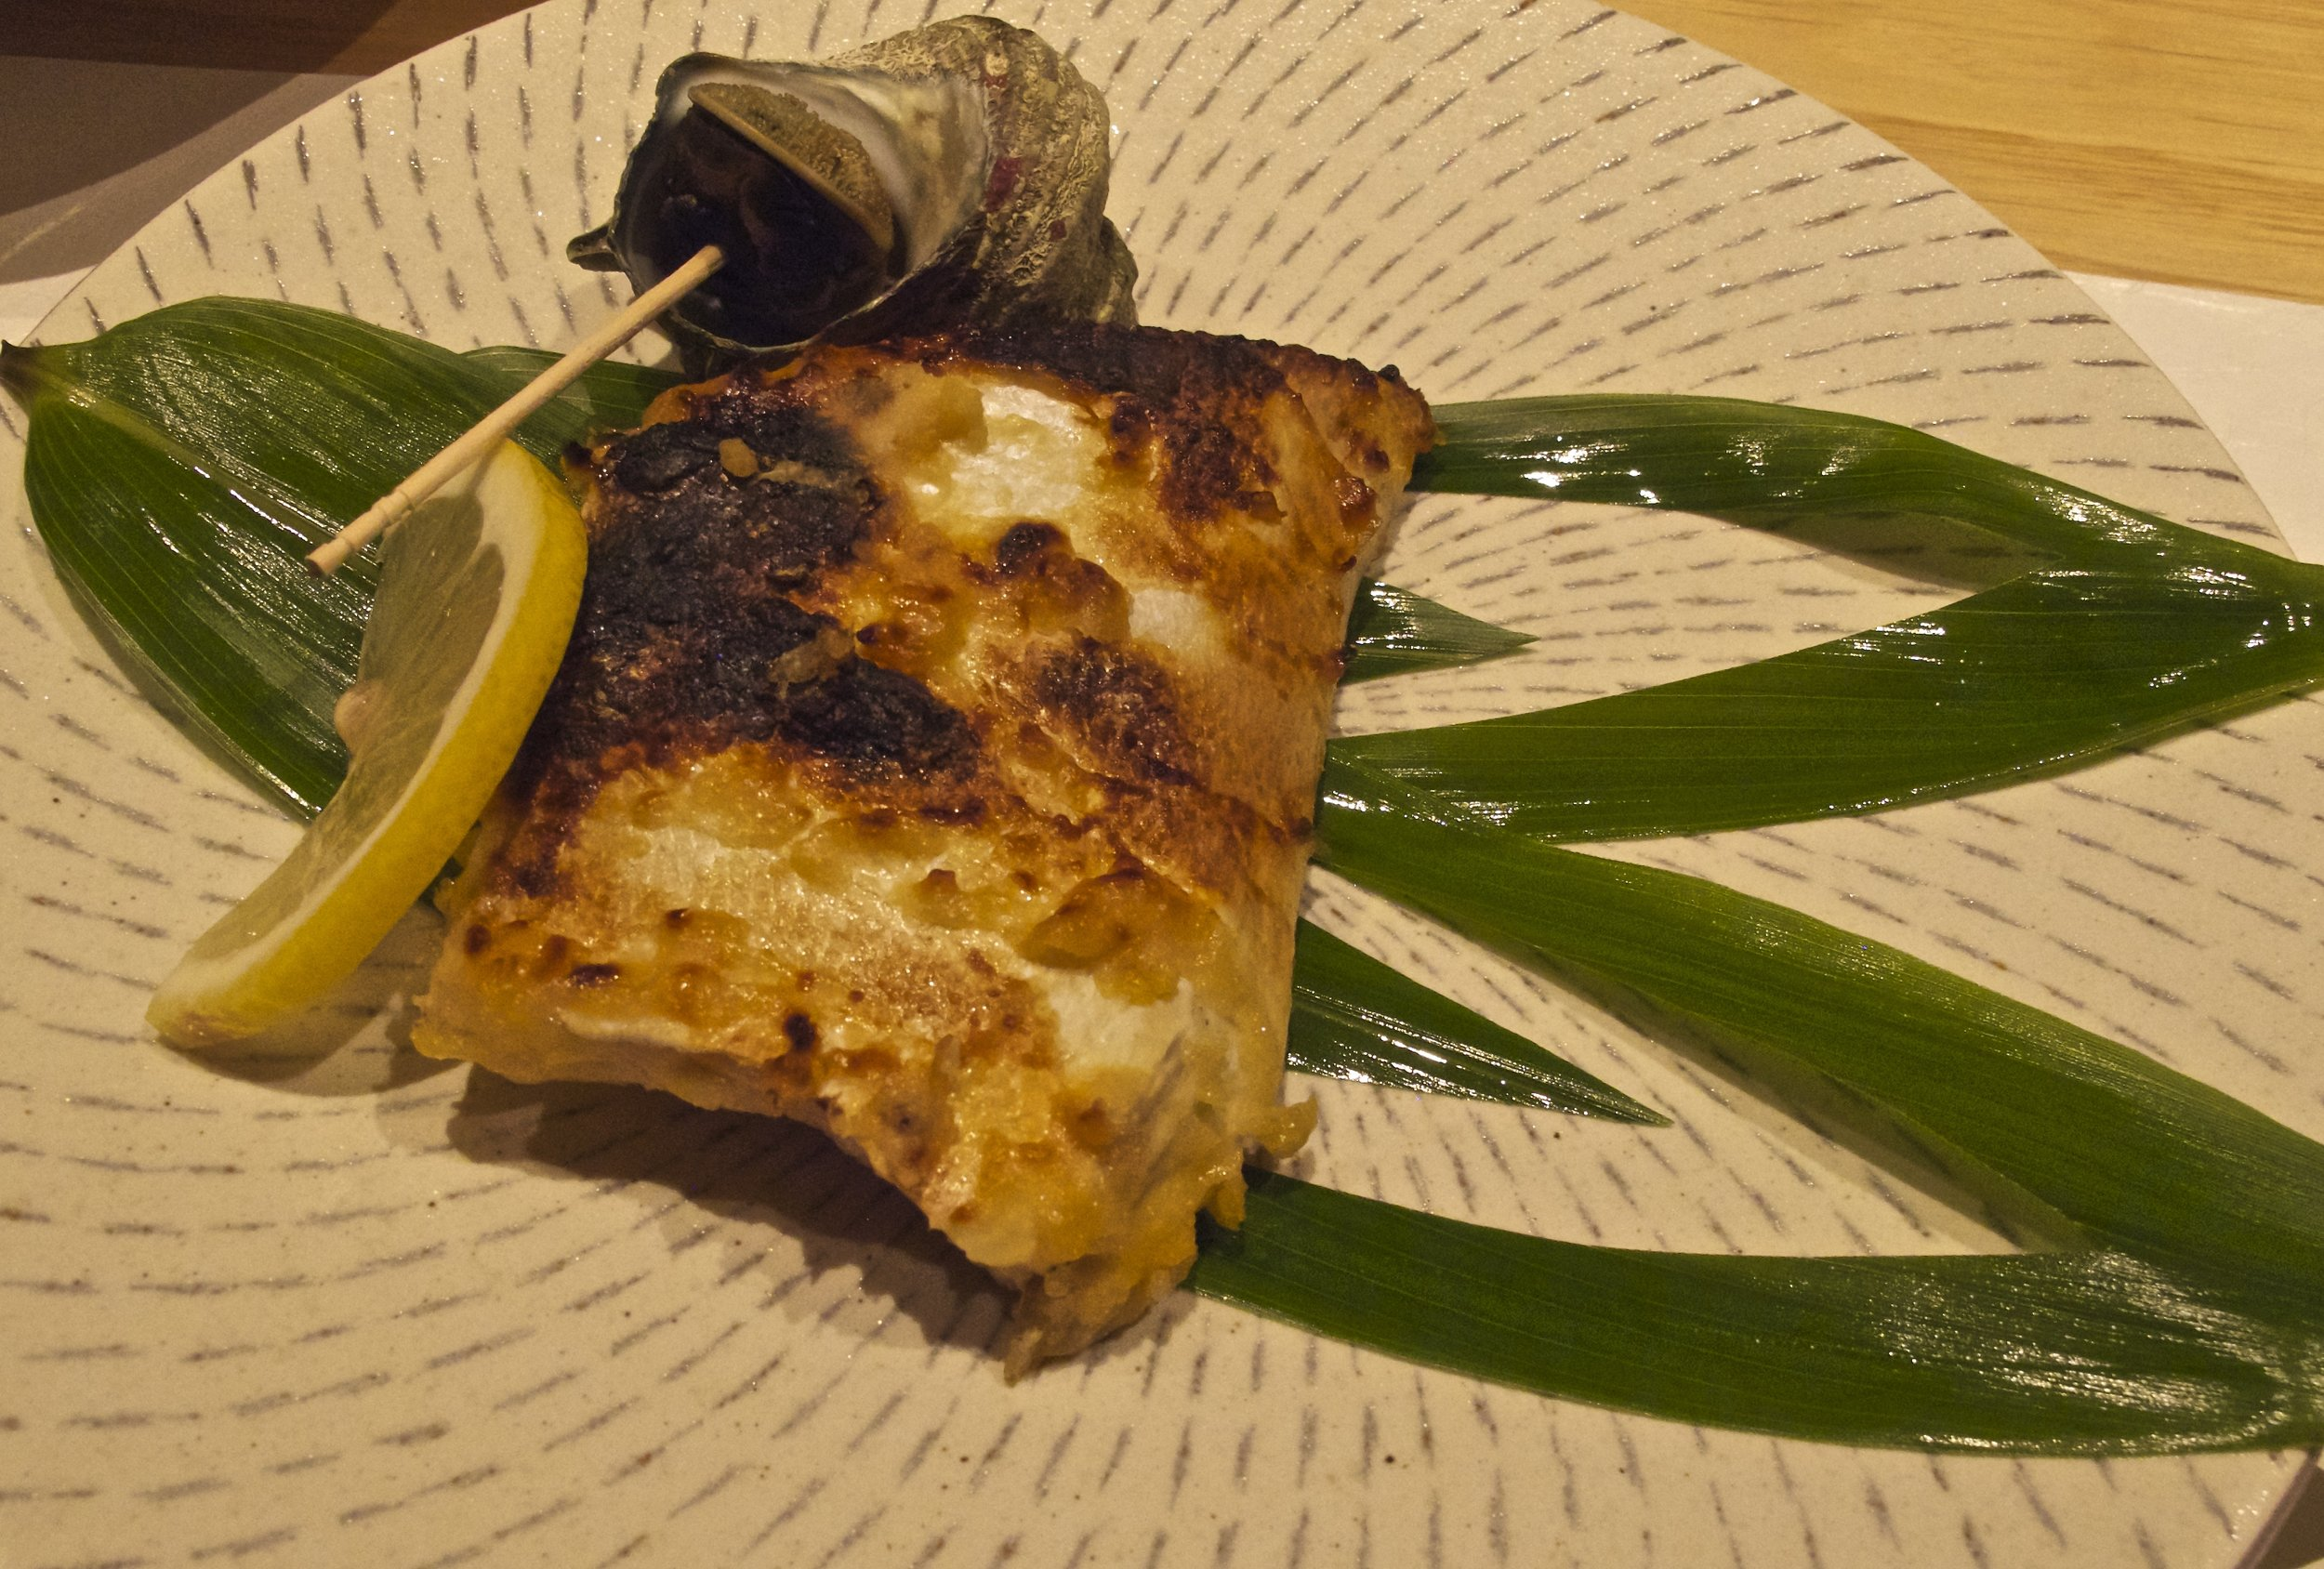 Being leaner late in the season at the end of spring,  Sawara , or Spanish mackerel, has been marinaded in miso and broiled to enrich its flavor.